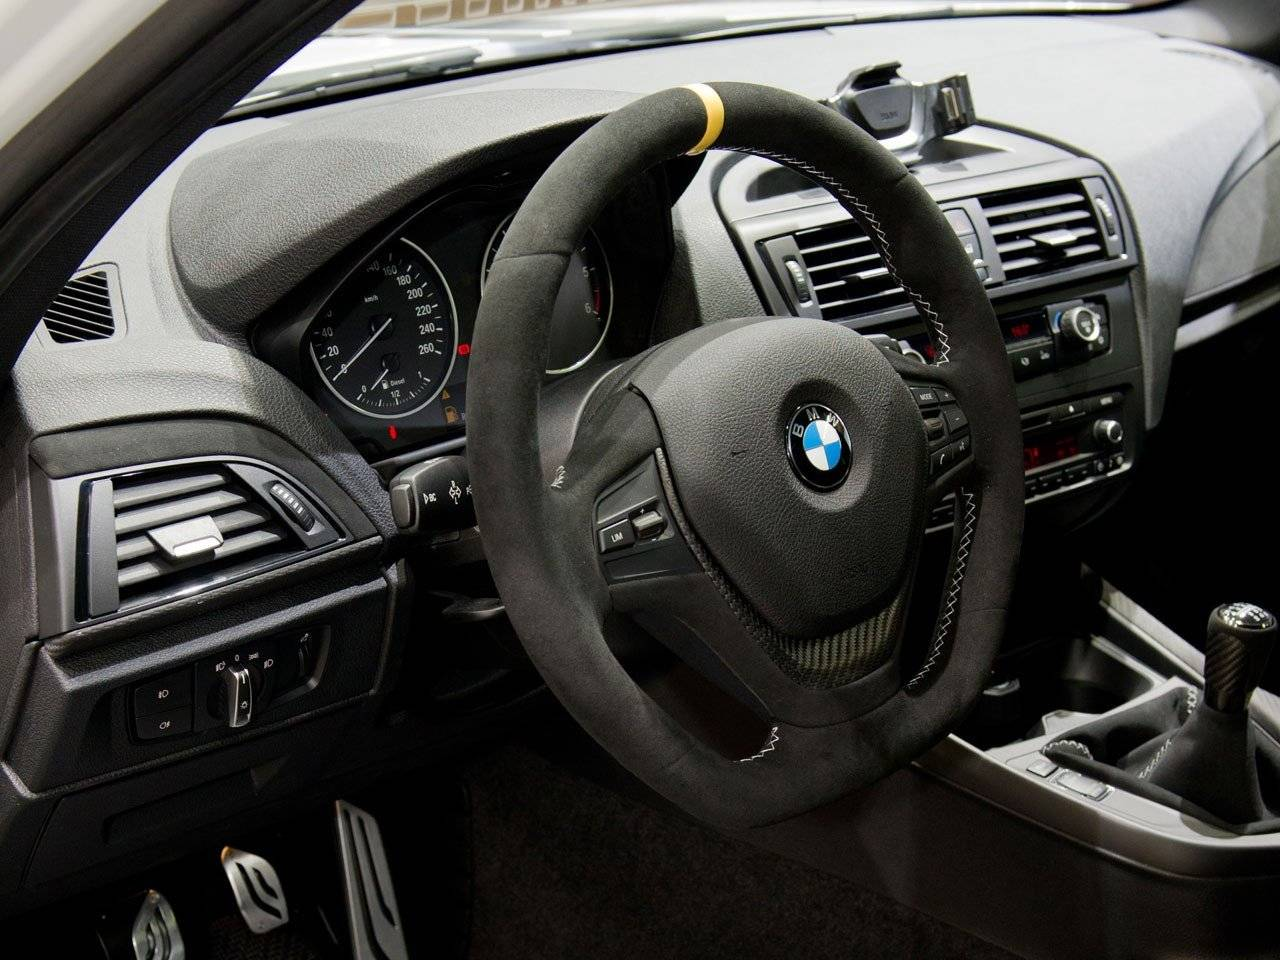 bmw performance accessoires voor nieuwe 1 serie tuning styling. Black Bedroom Furniture Sets. Home Design Ideas